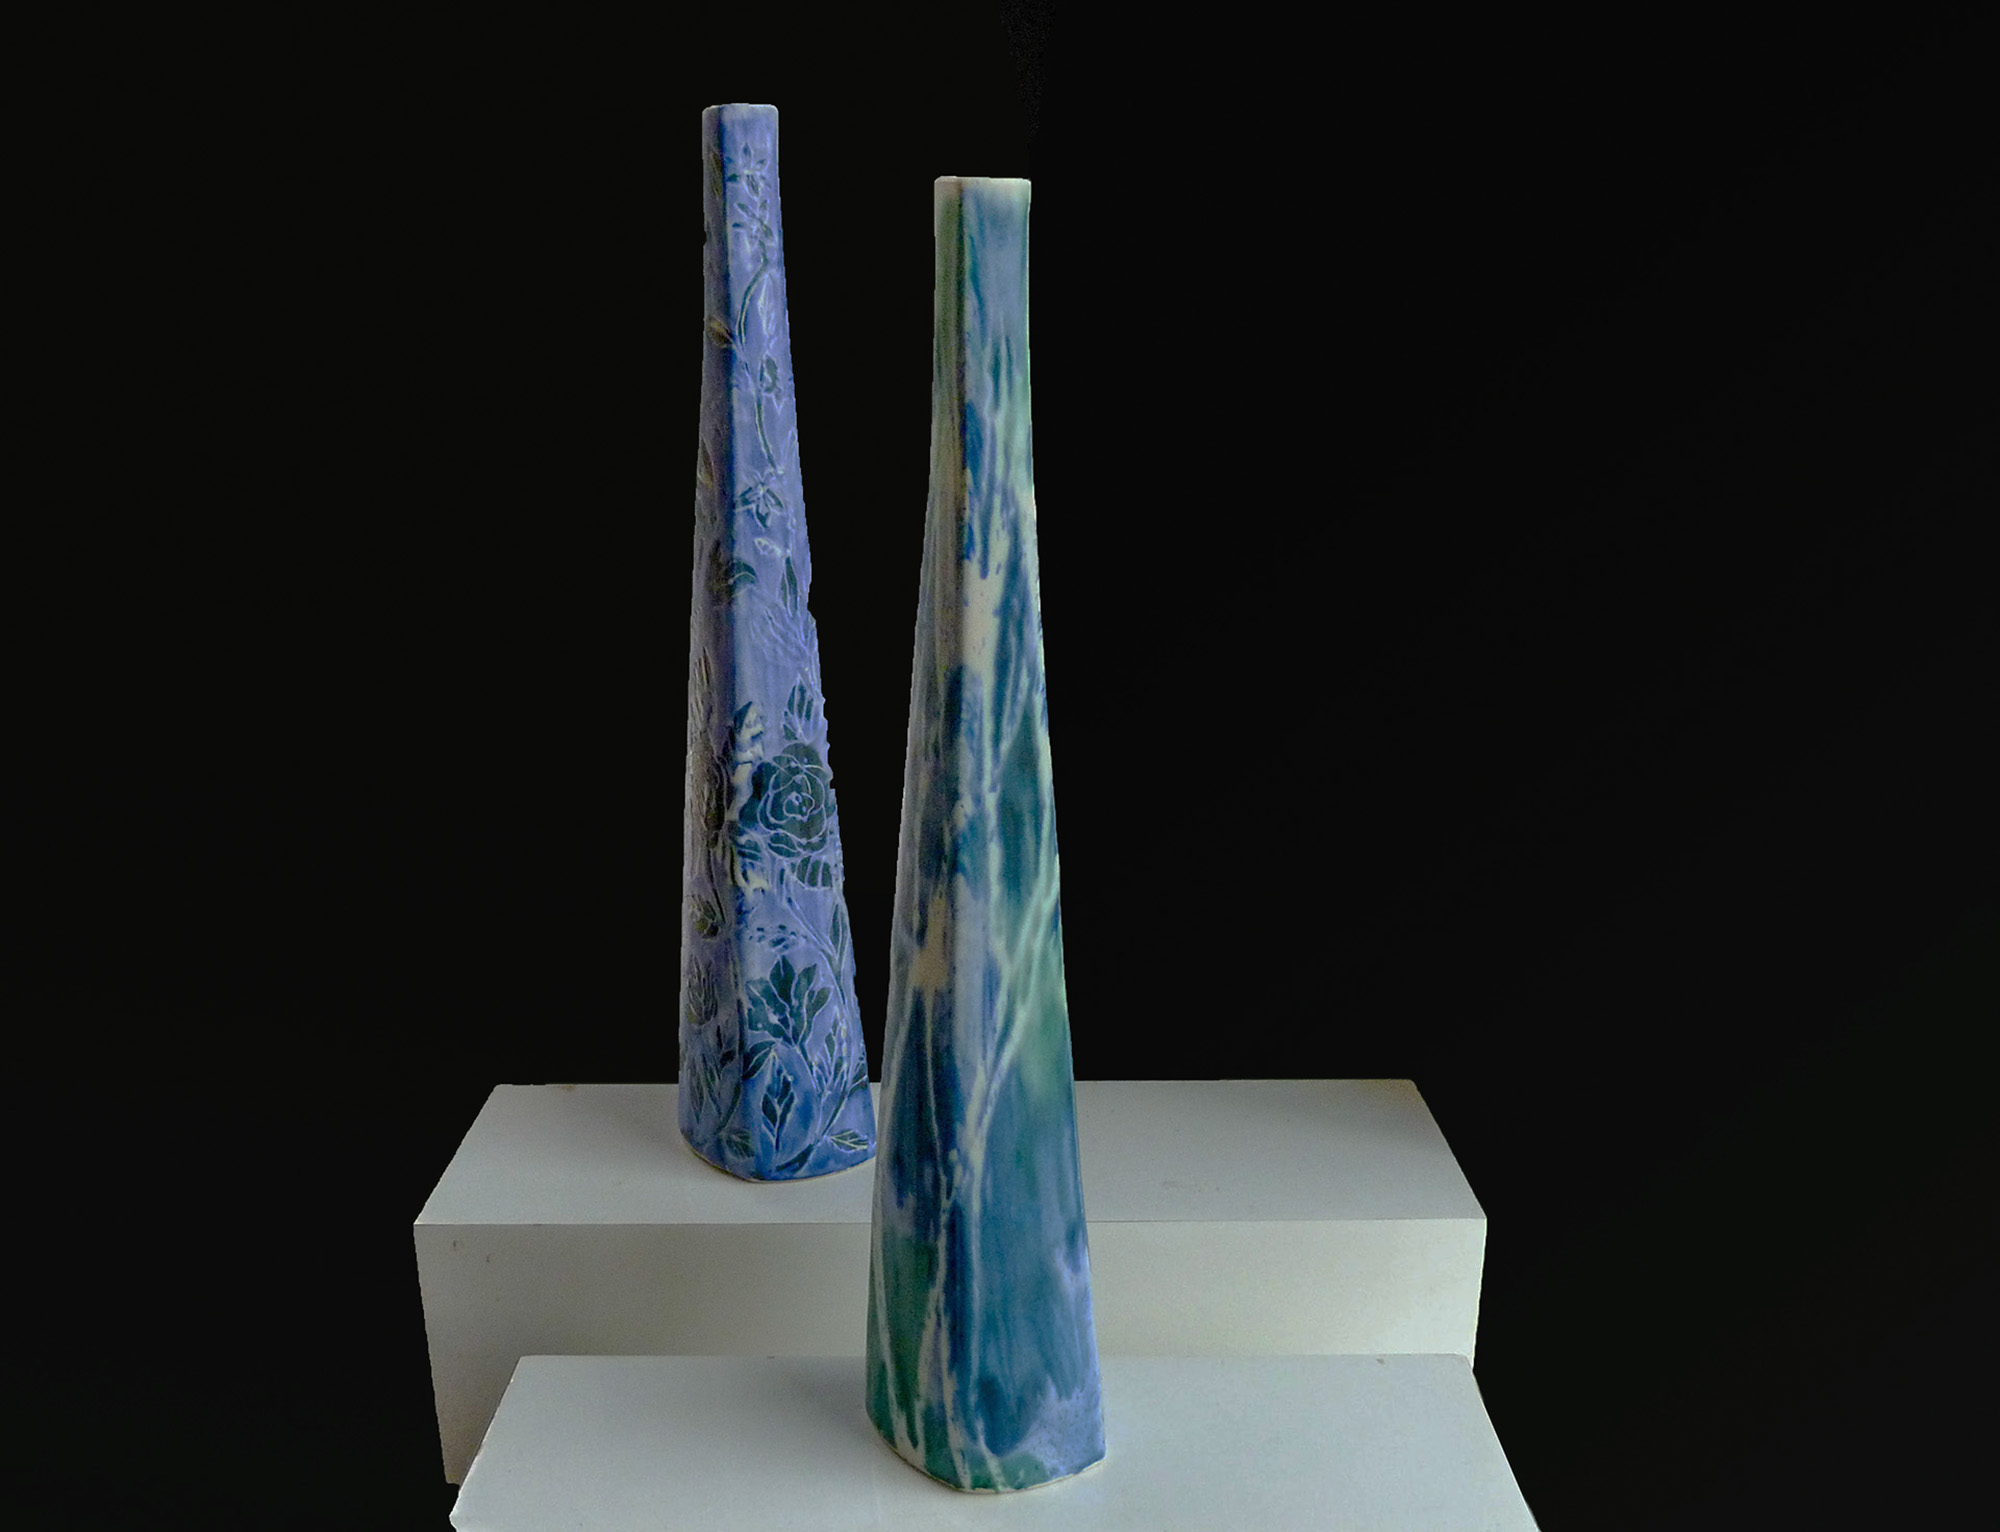 Two Chimney Vases